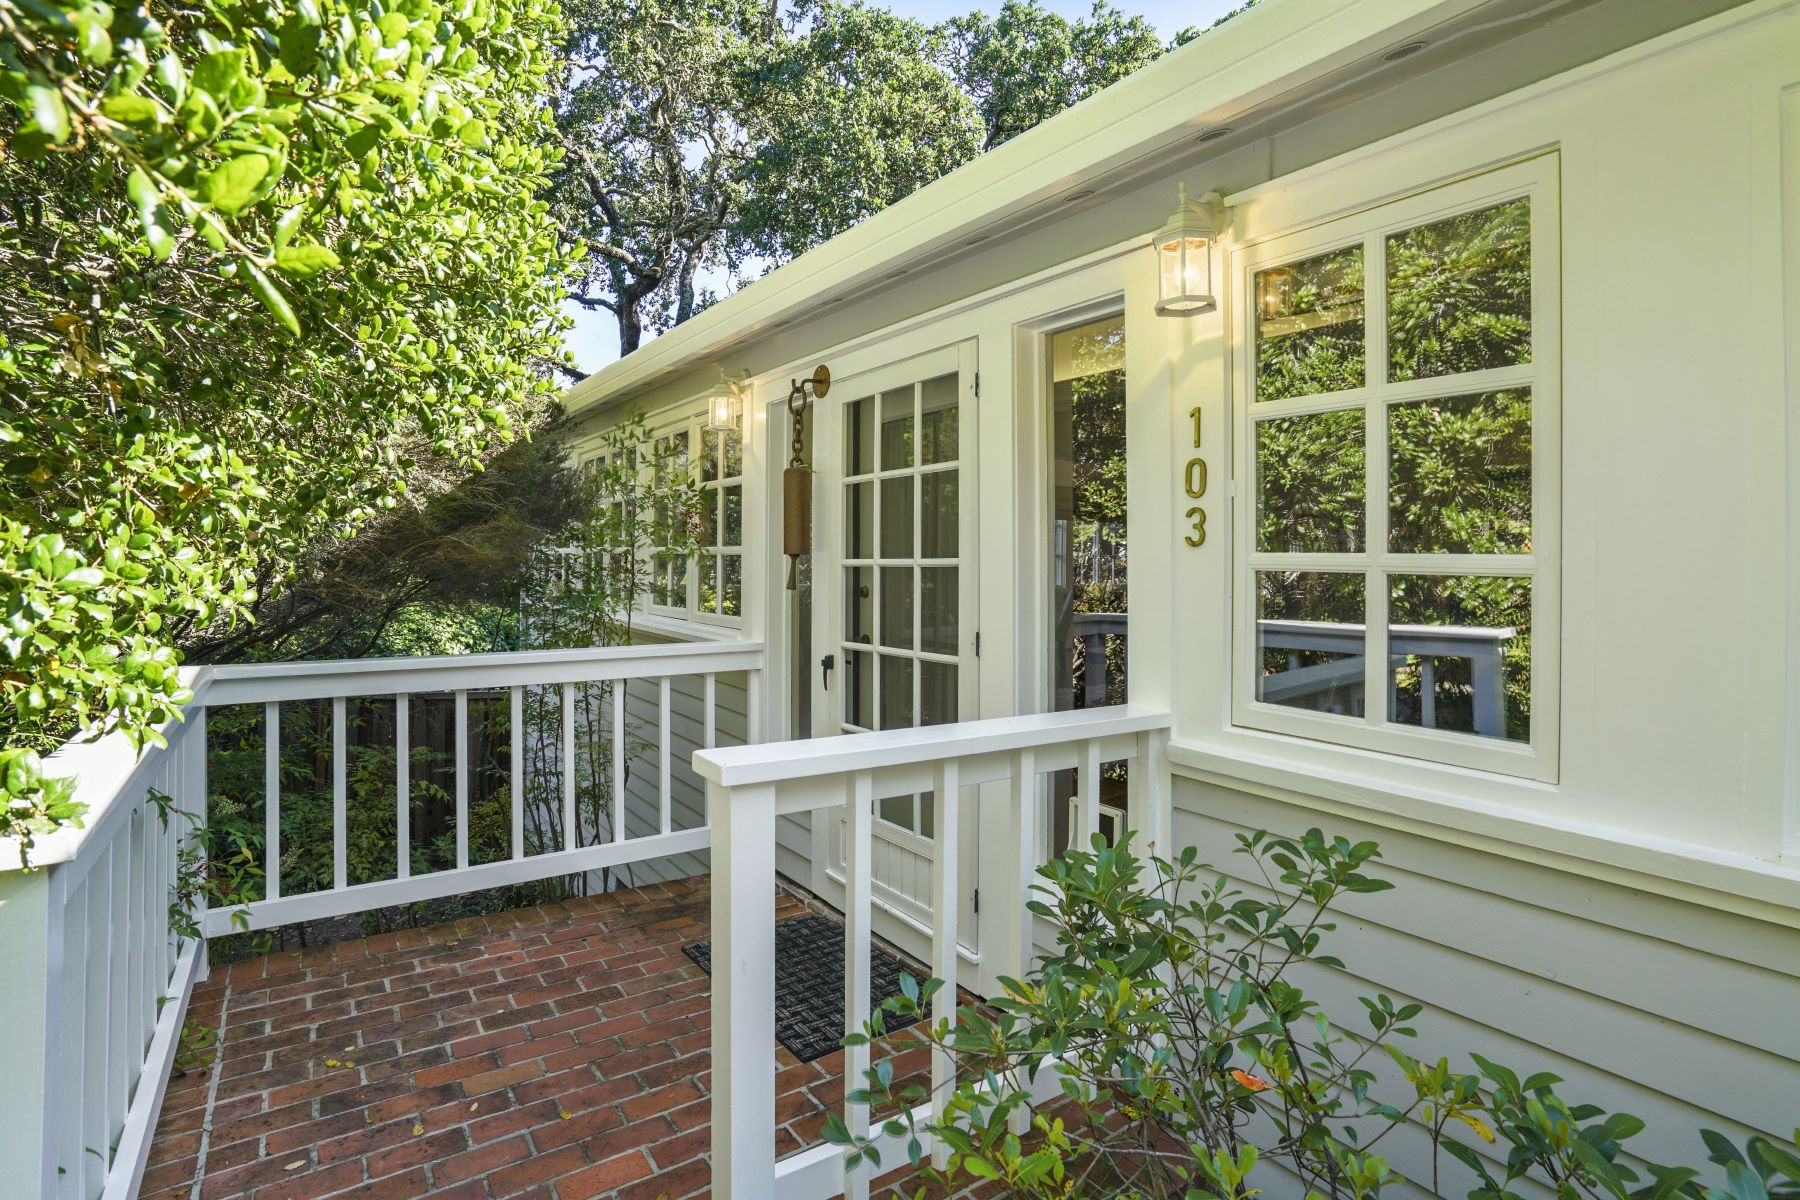 Single Family Homes for Sale at Idyllic Glens Cottage 103 Hillside Drive Woodside, California 94062 United States